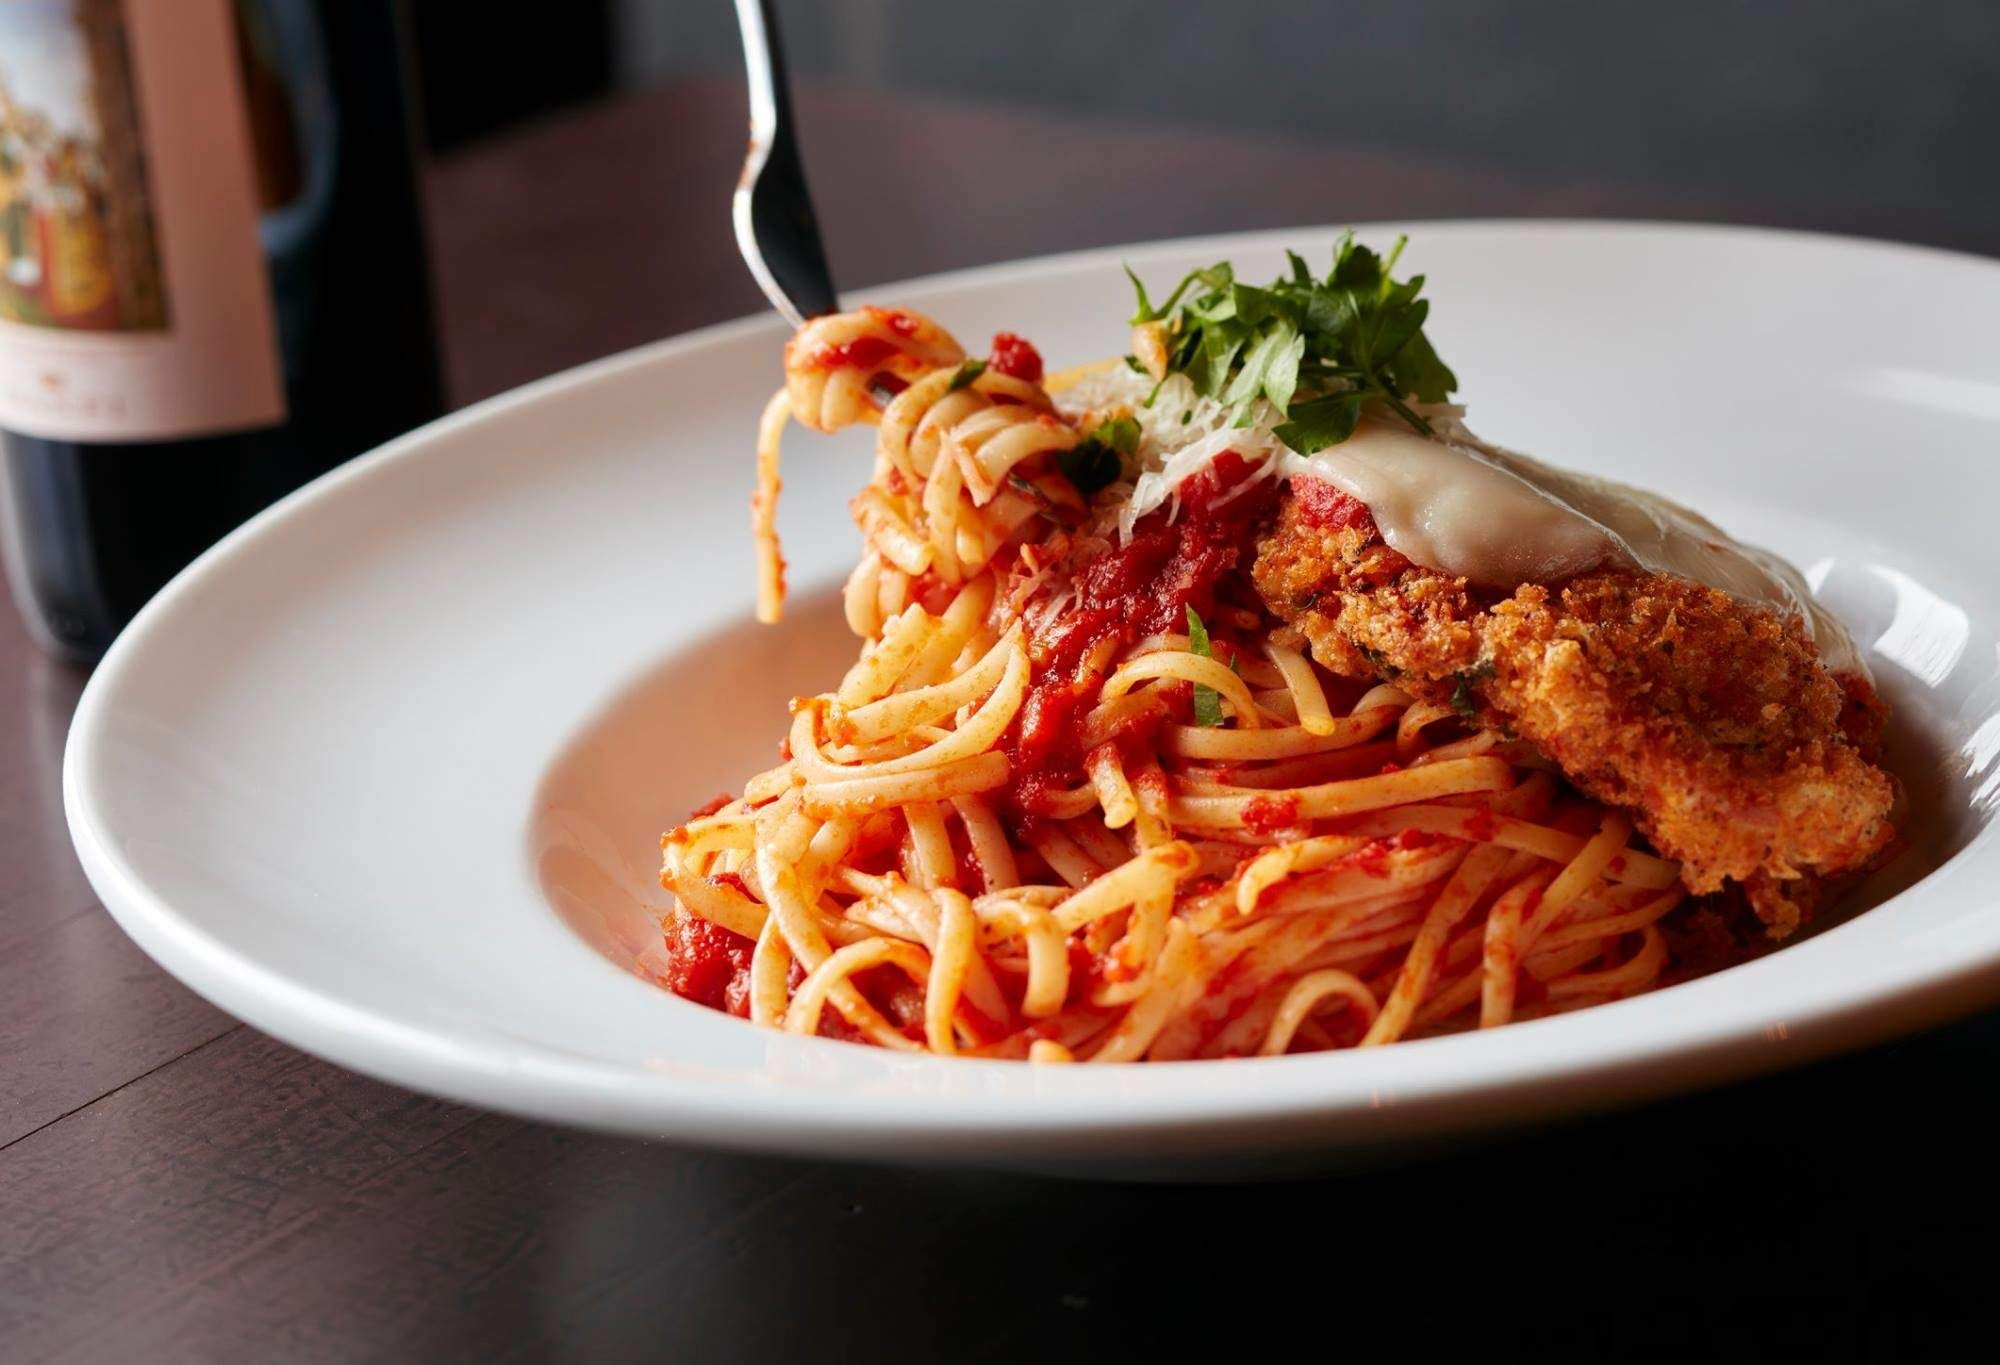 The Best Italian Restaurants in the Twin Cities